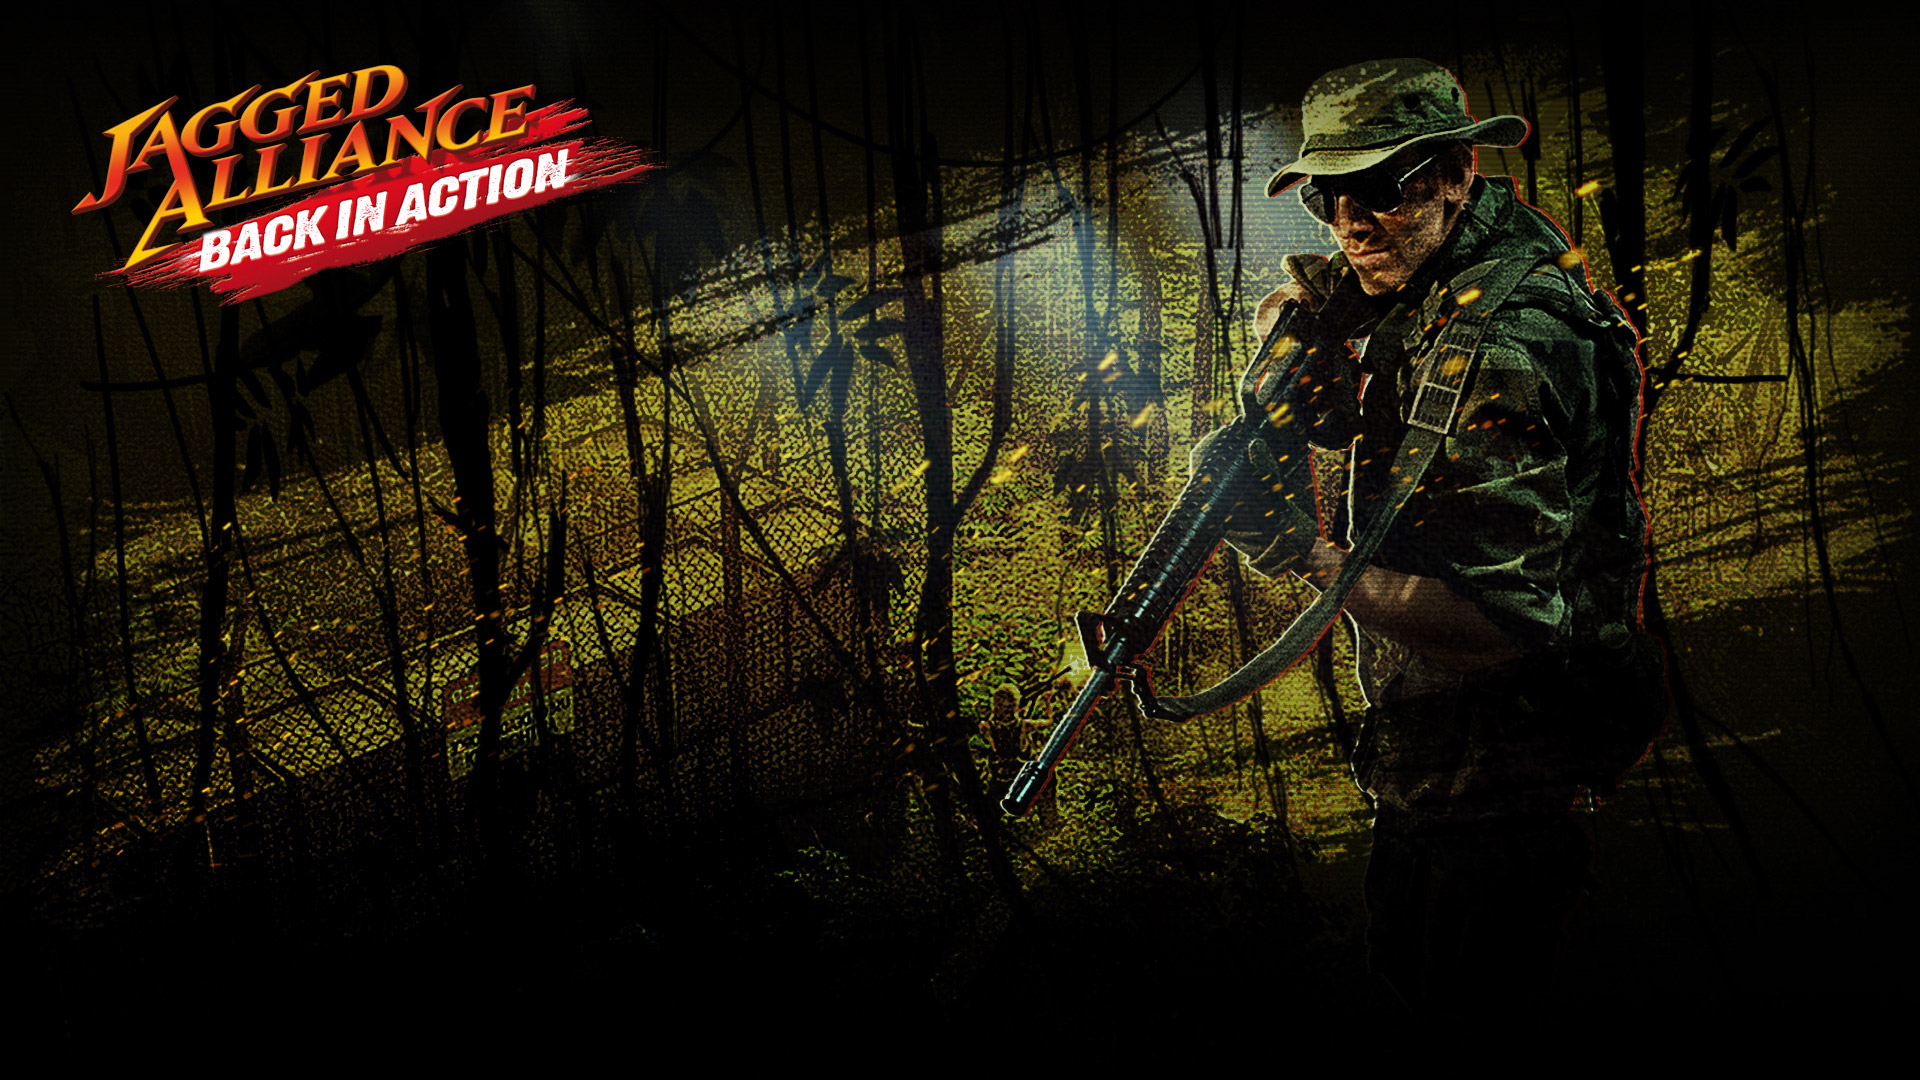 Free Jagged Alliance: Back in Action Wallpaper in 1920x1080